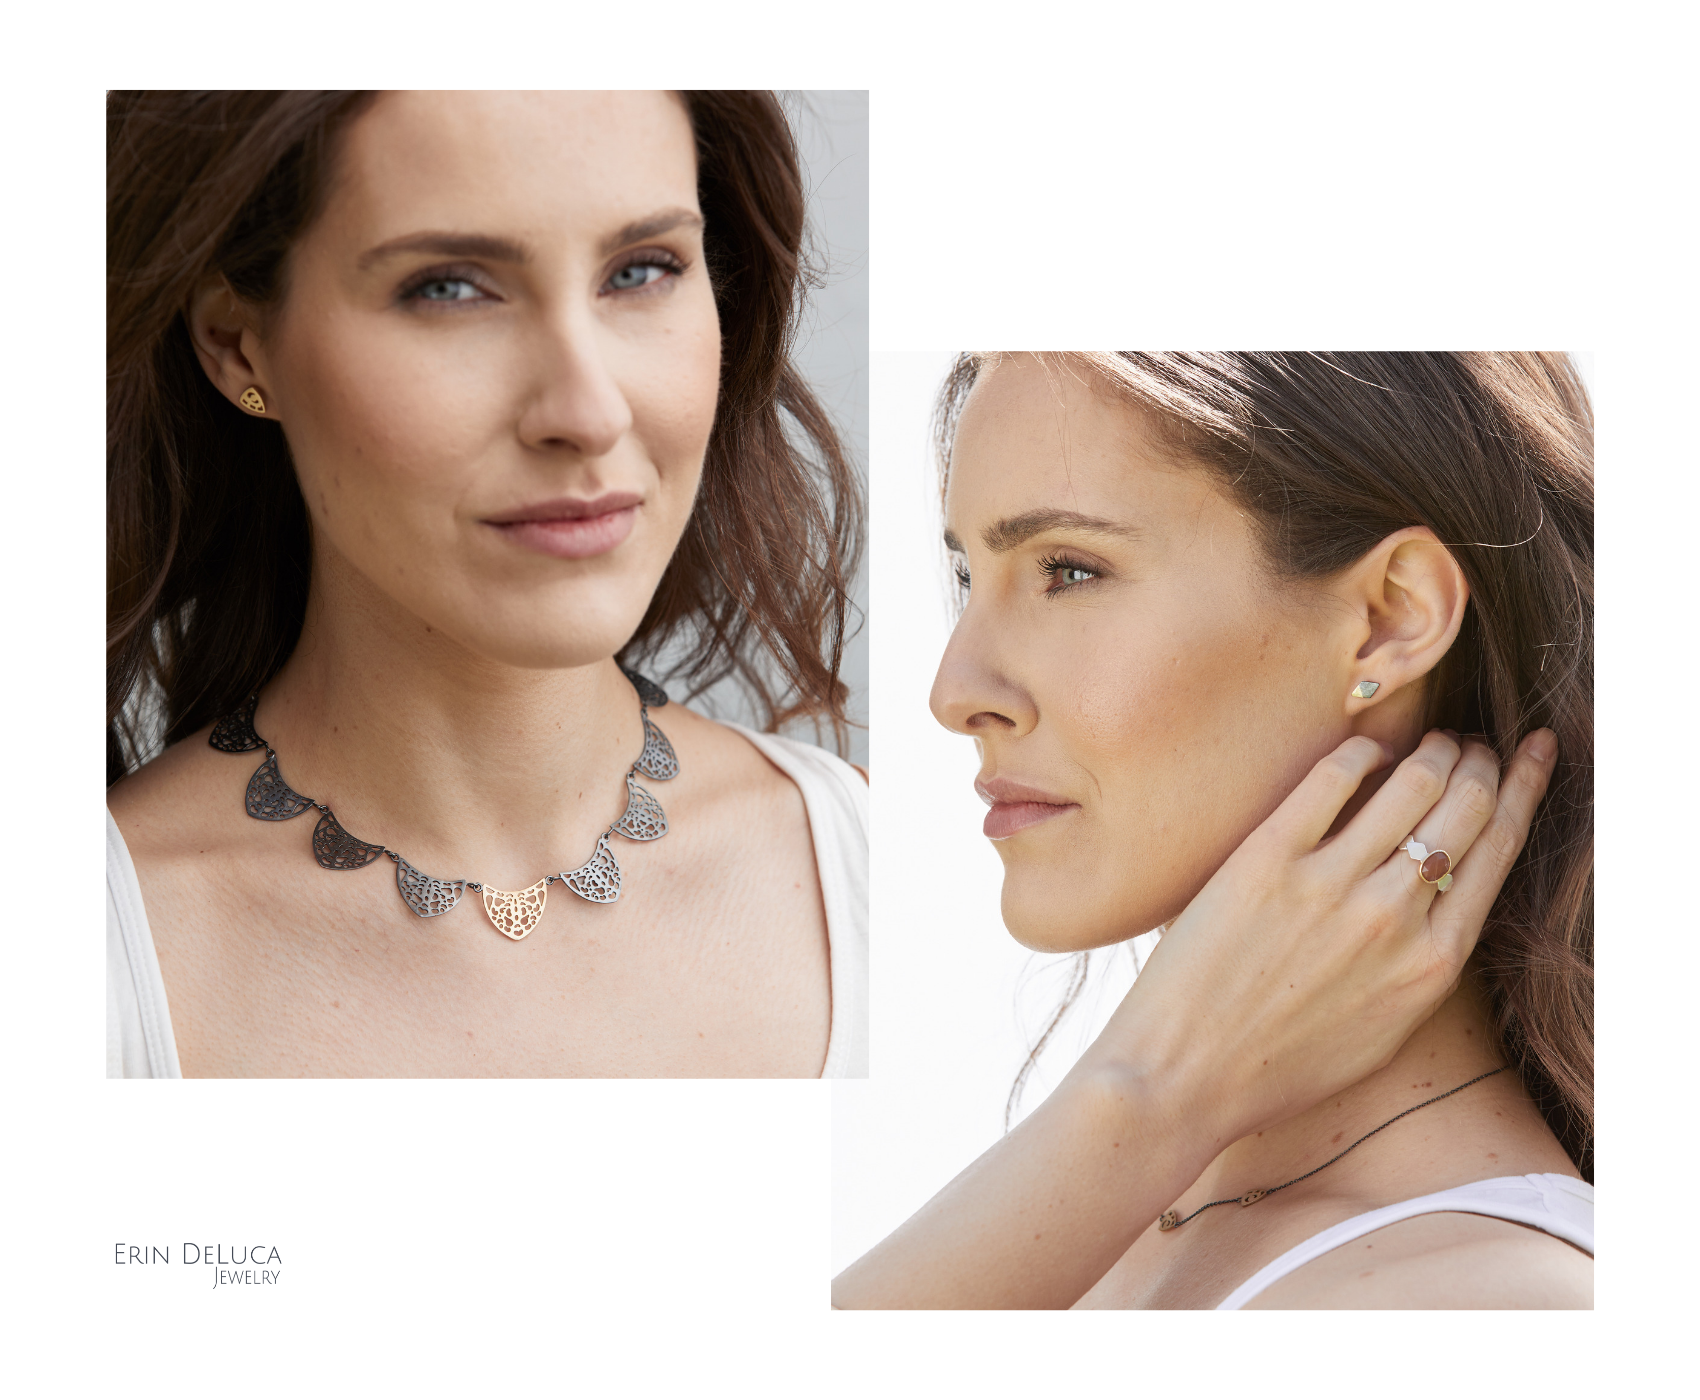 Erin DeLuca Jewelry Lookbook 11.png